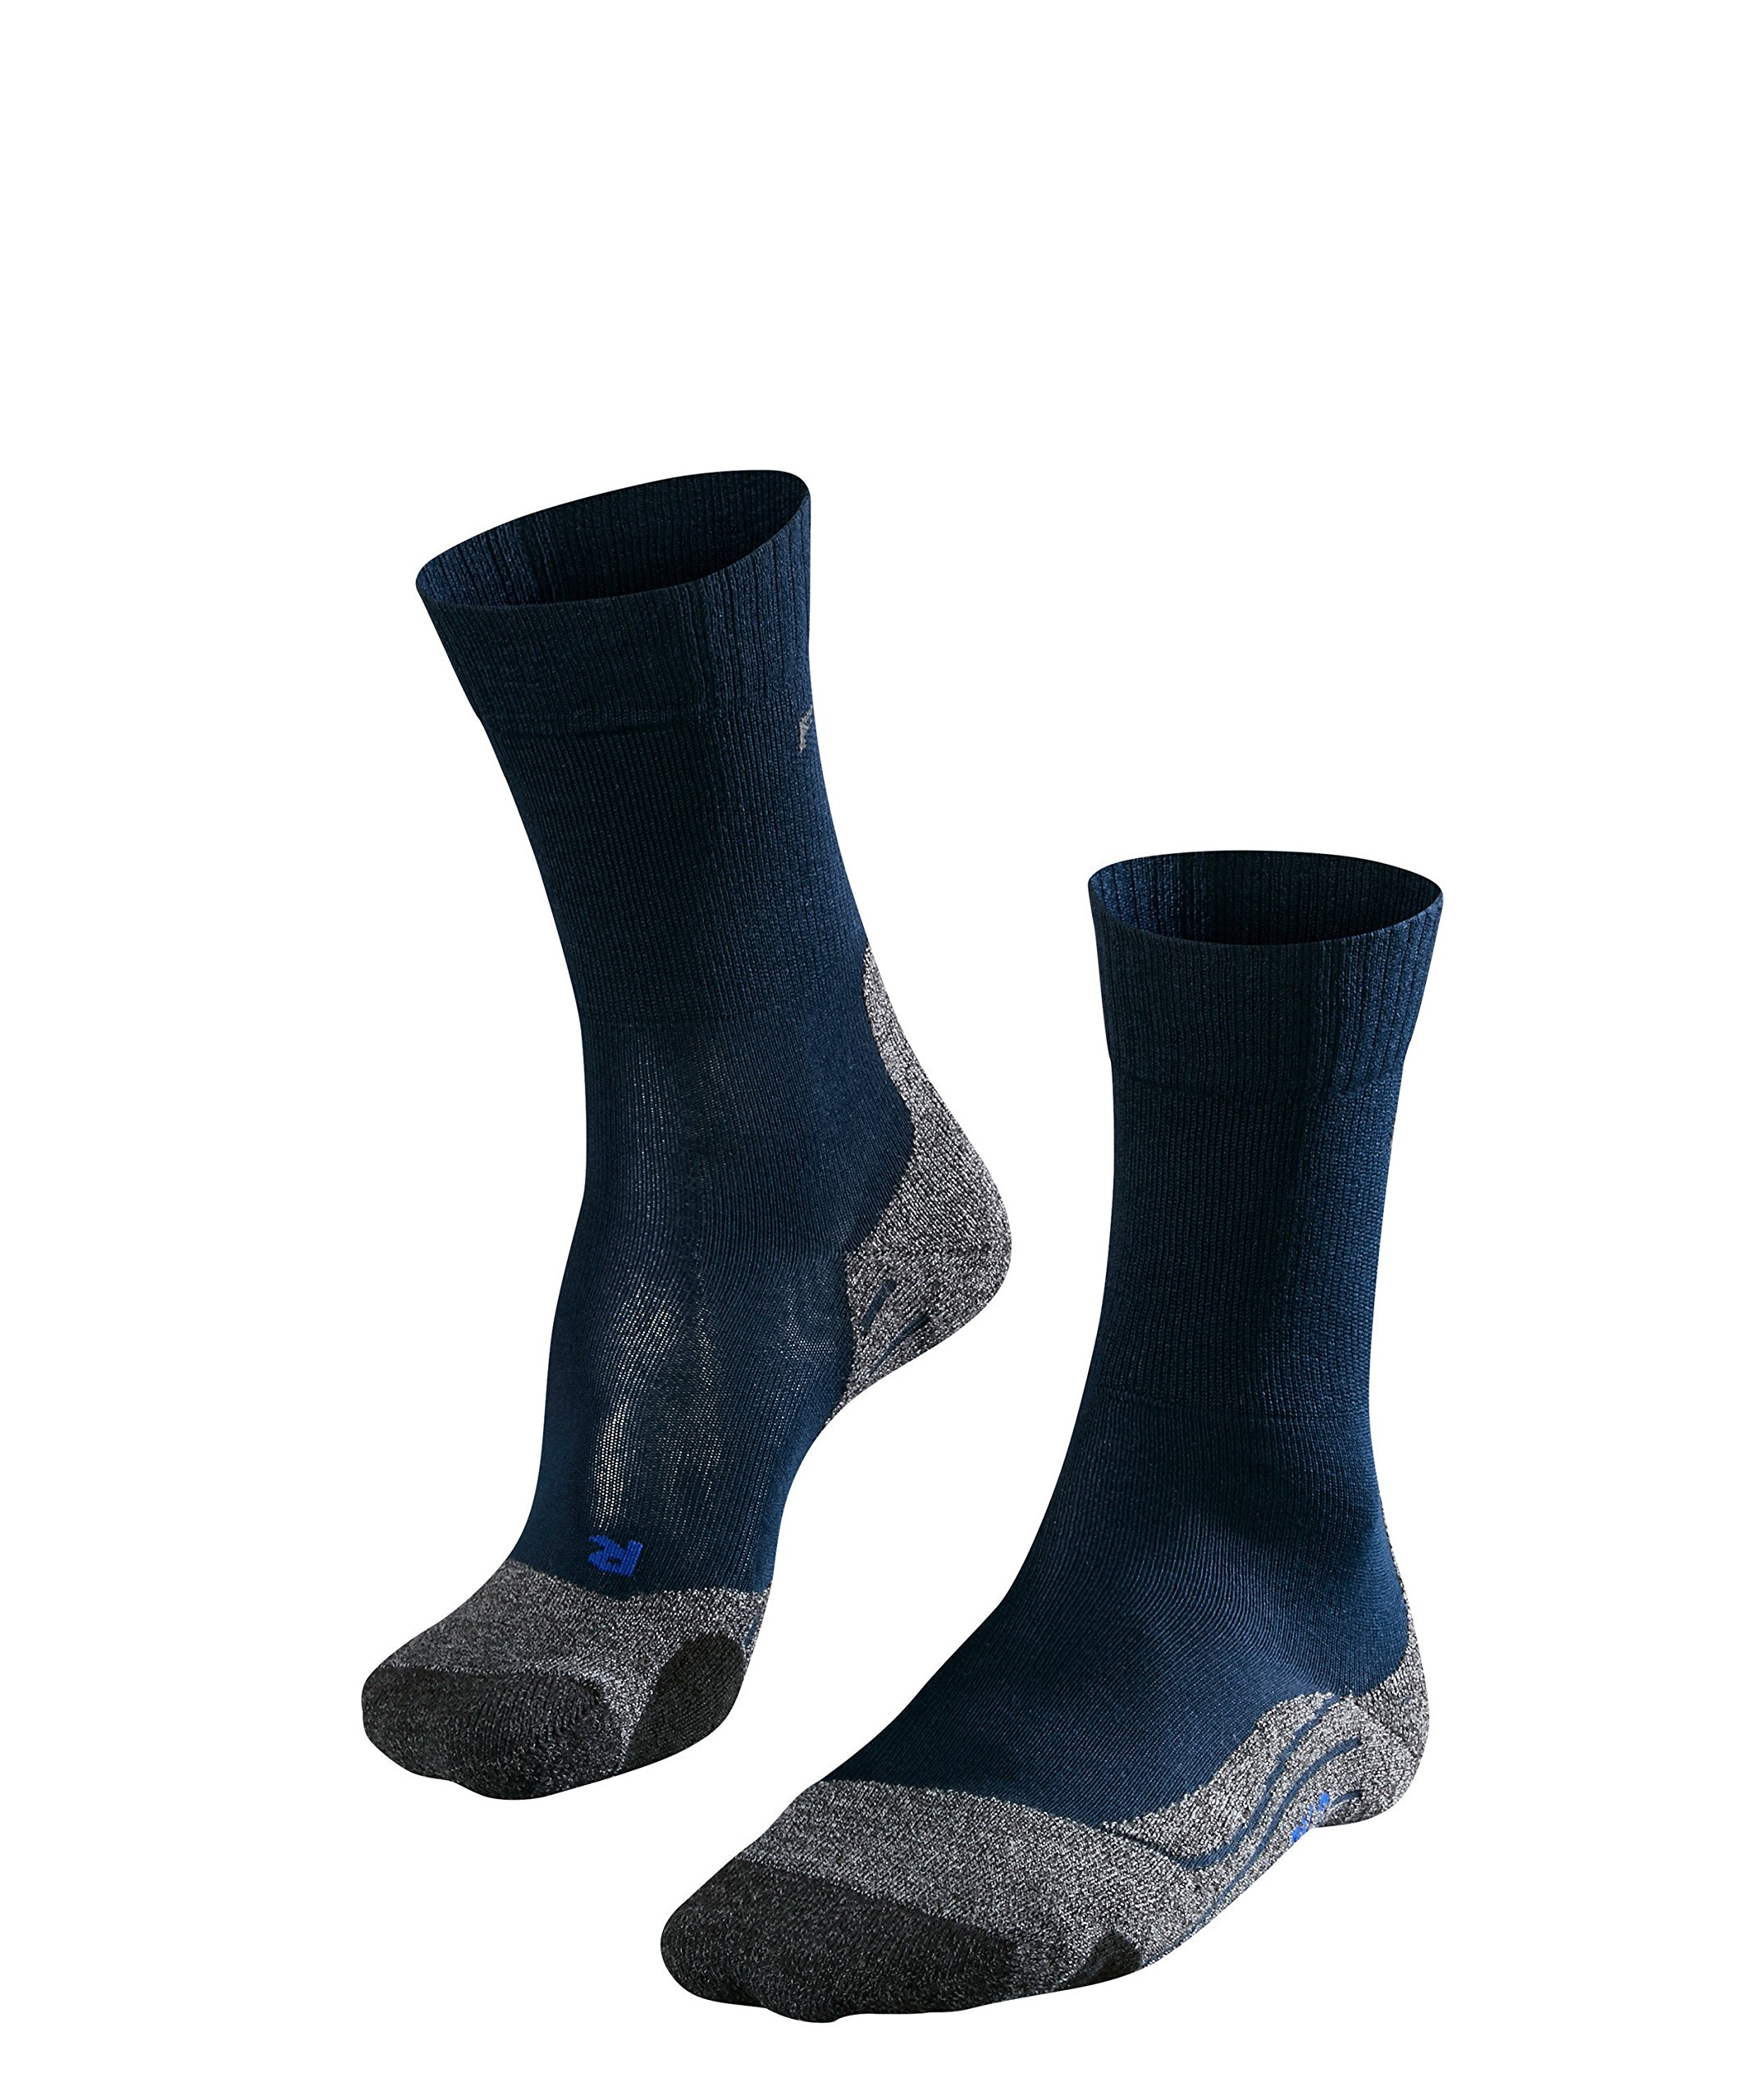 FALKE Womens TK2 Cool Hiking Socks - Anti Blister, Navy Blue, US sizes 6.5 to 10.5, 1 Pair